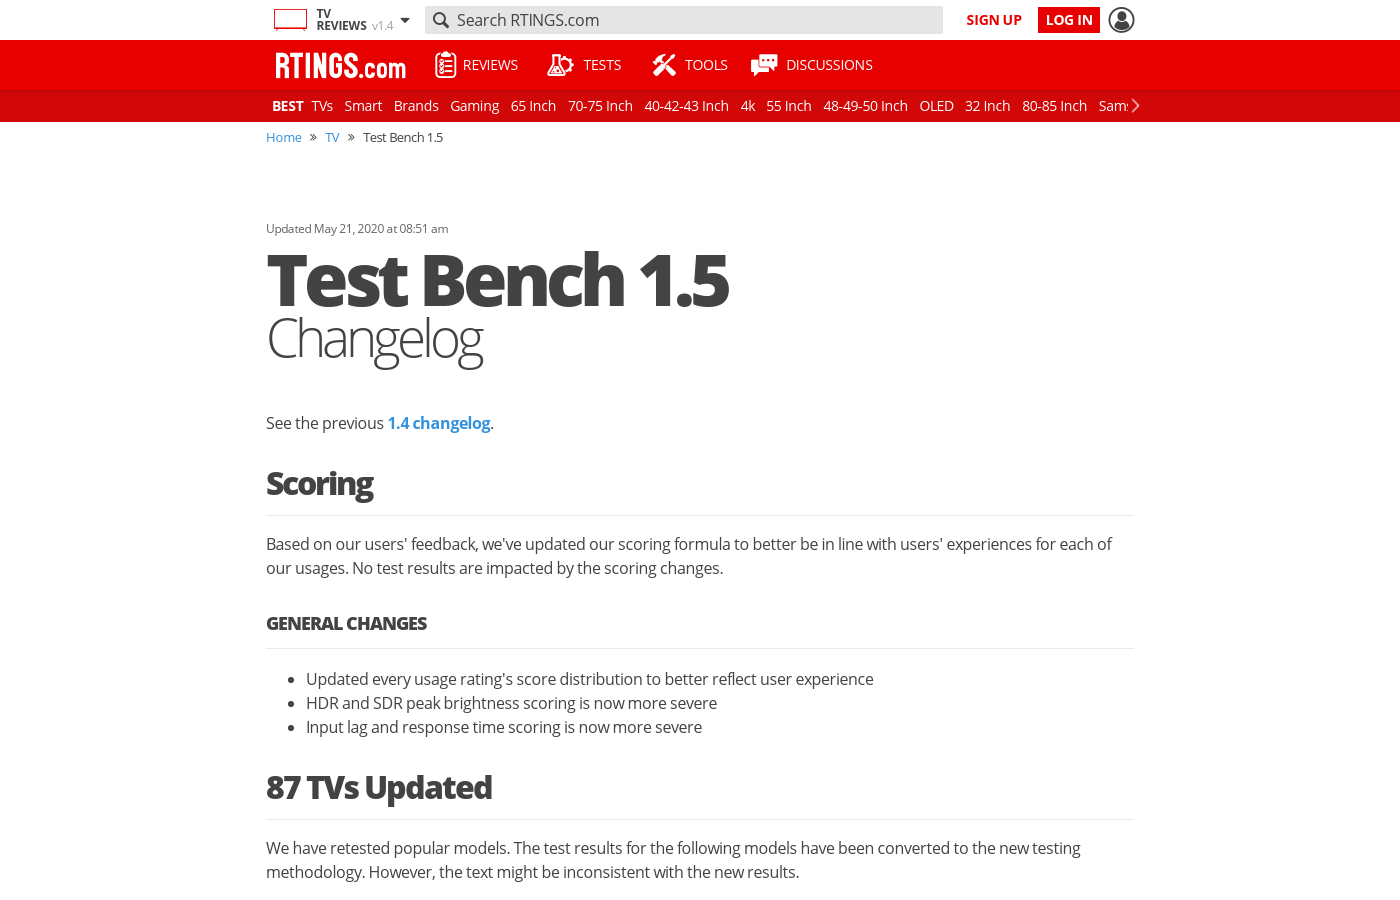 Test Bench 1.5: Changelog